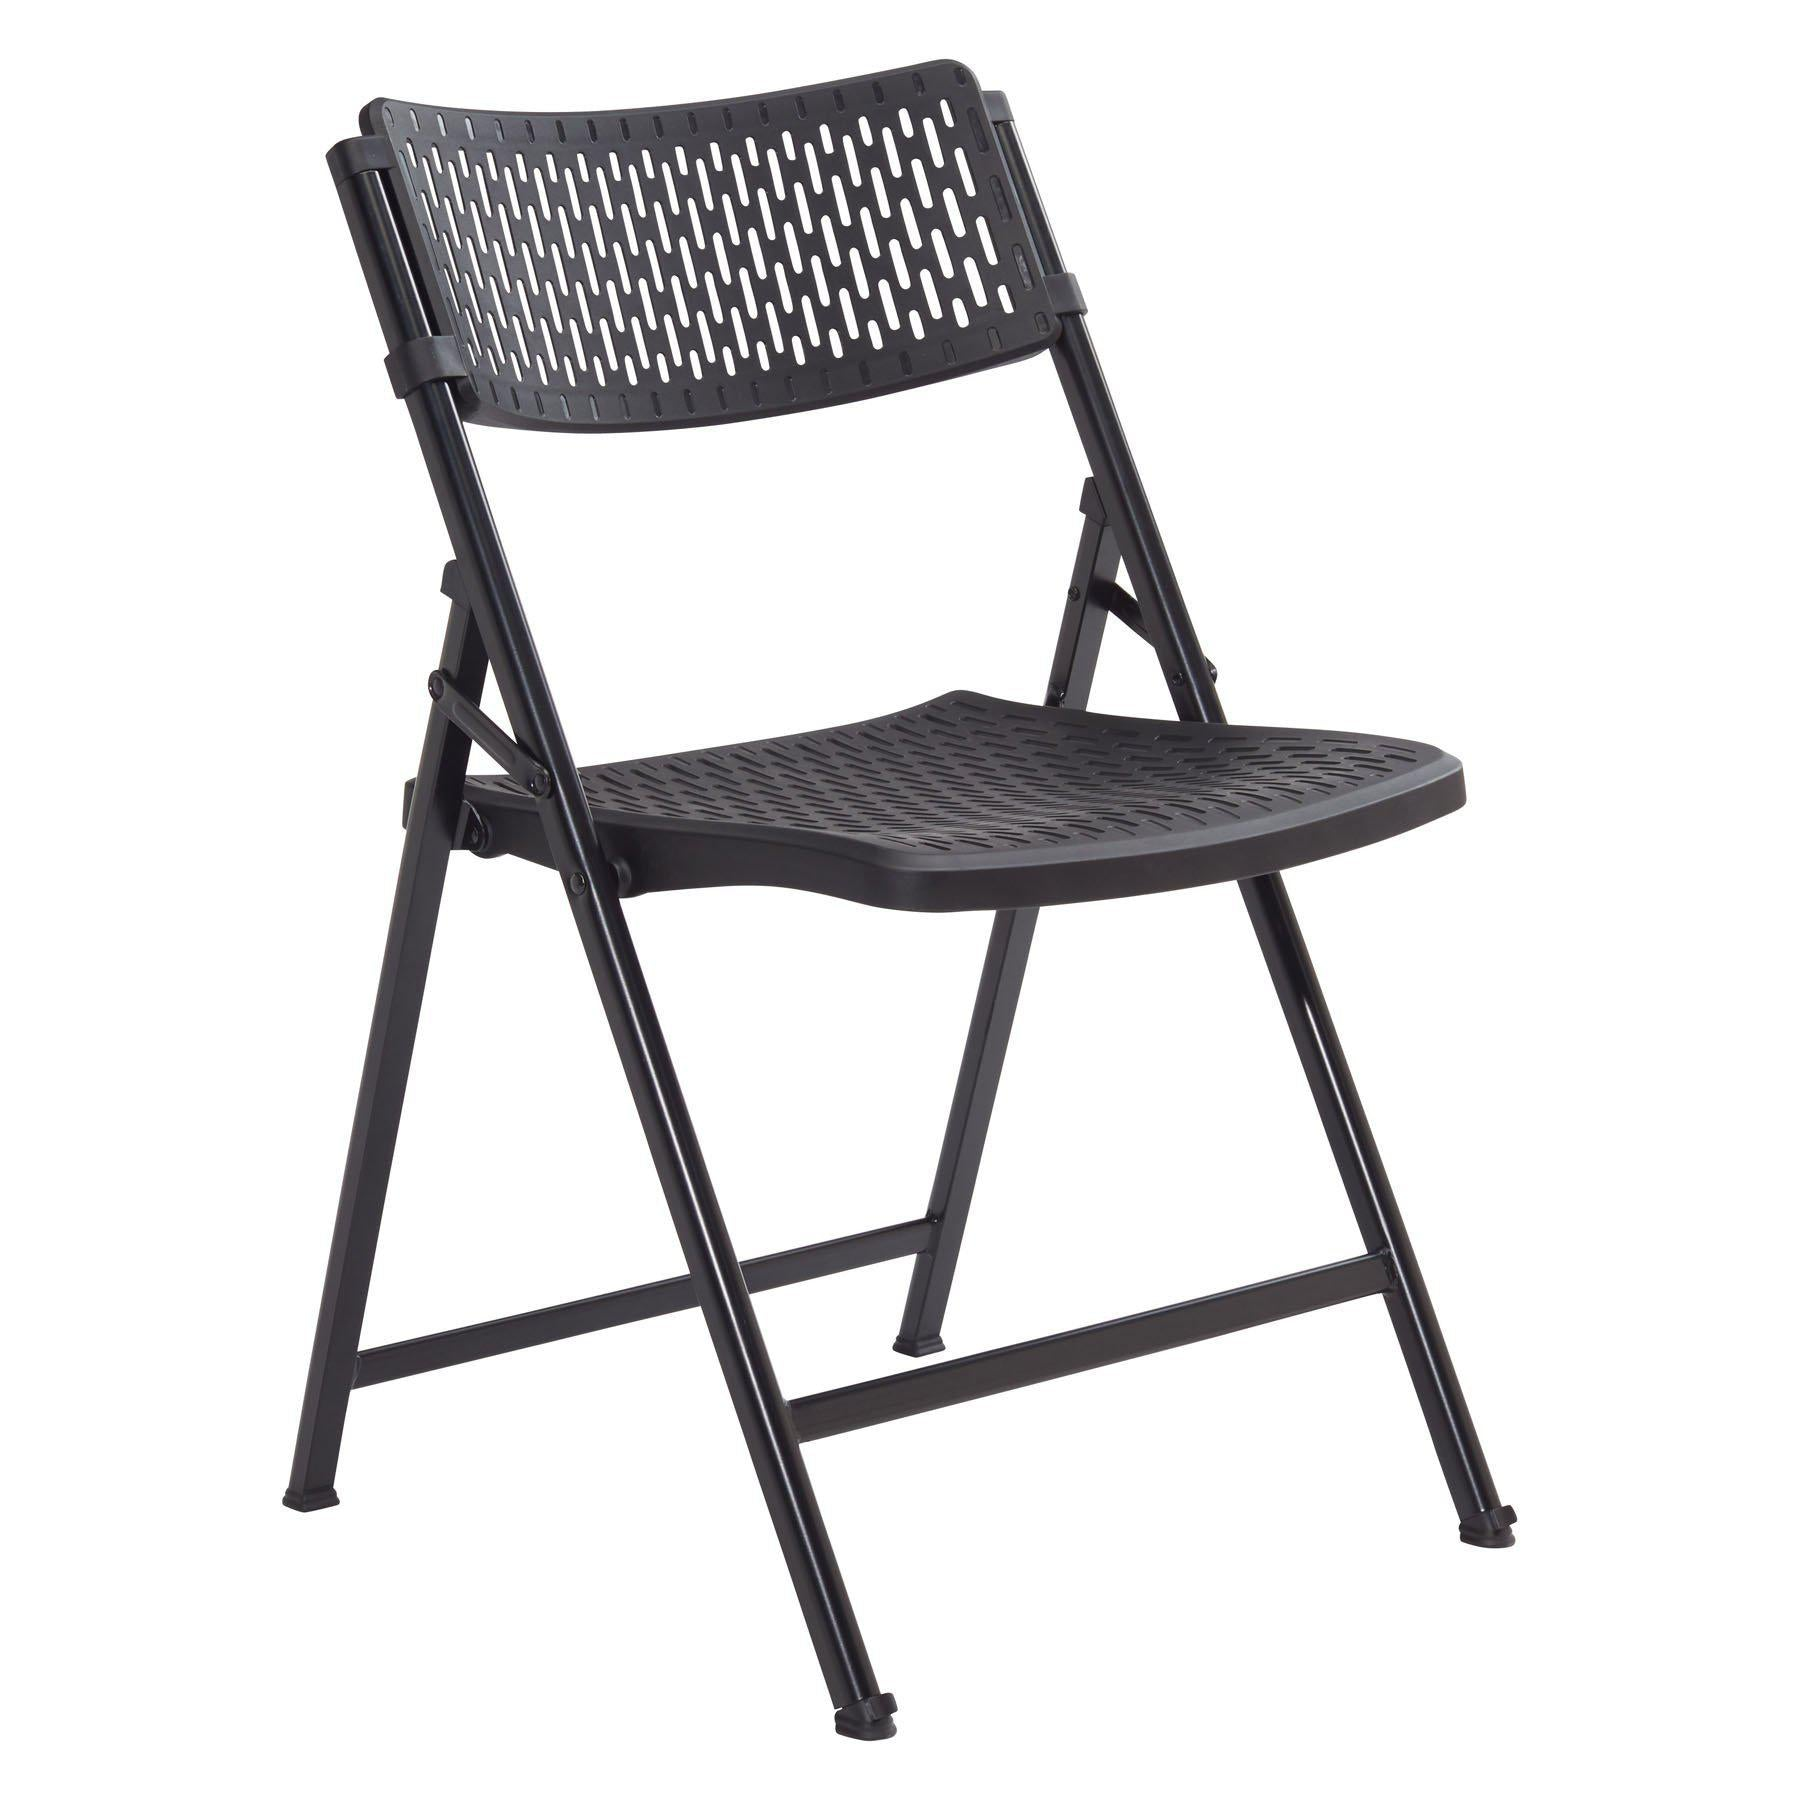 Airflex Premium Polypropylene Folding Chair, Black